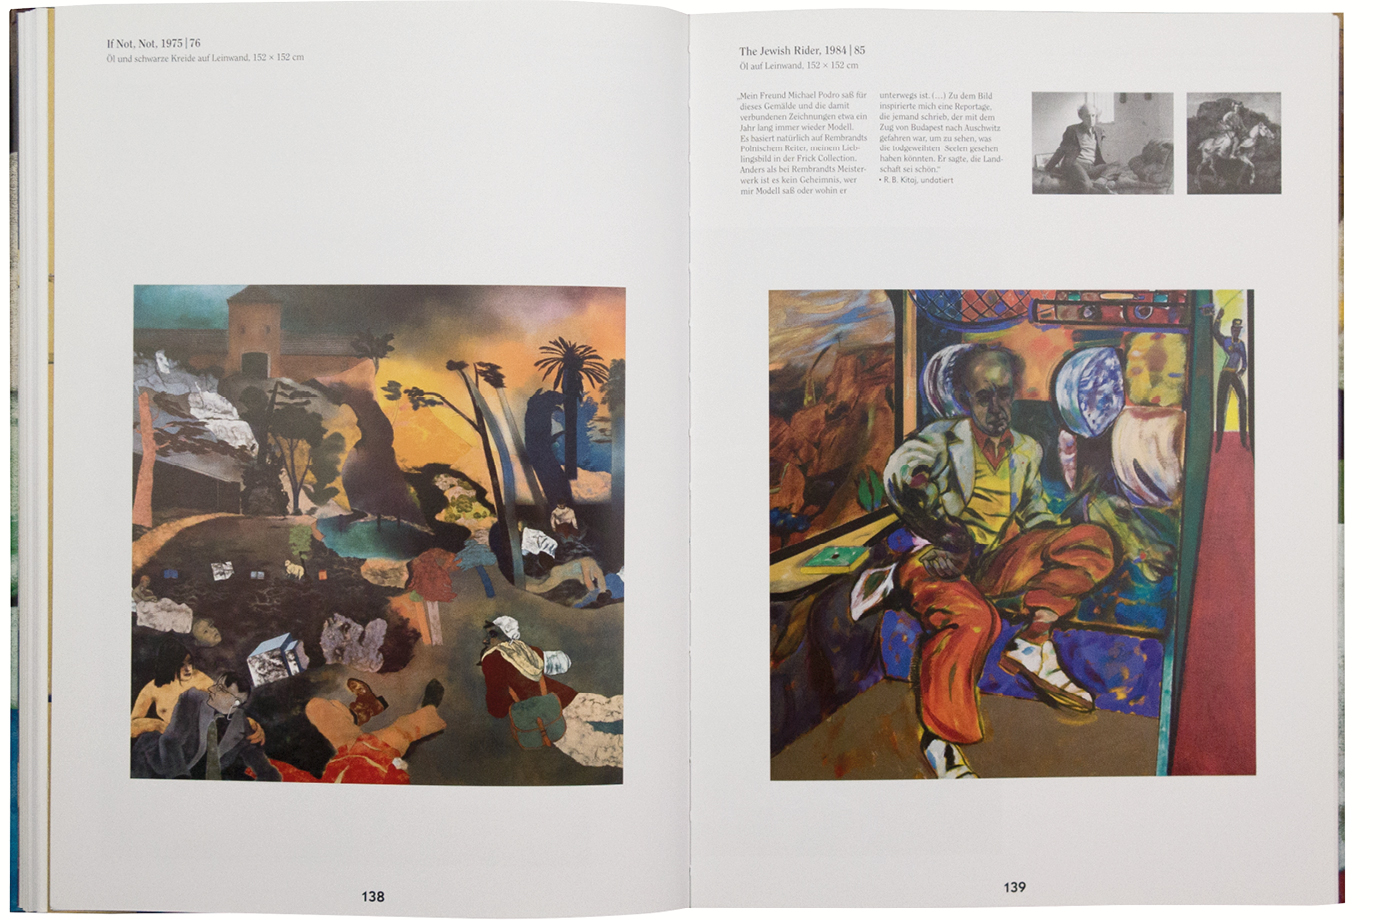 http://e-o-t.de/wordpress/wp-content/uploads/2017/07/eot-2012-Kitaj-Book-19.jpg